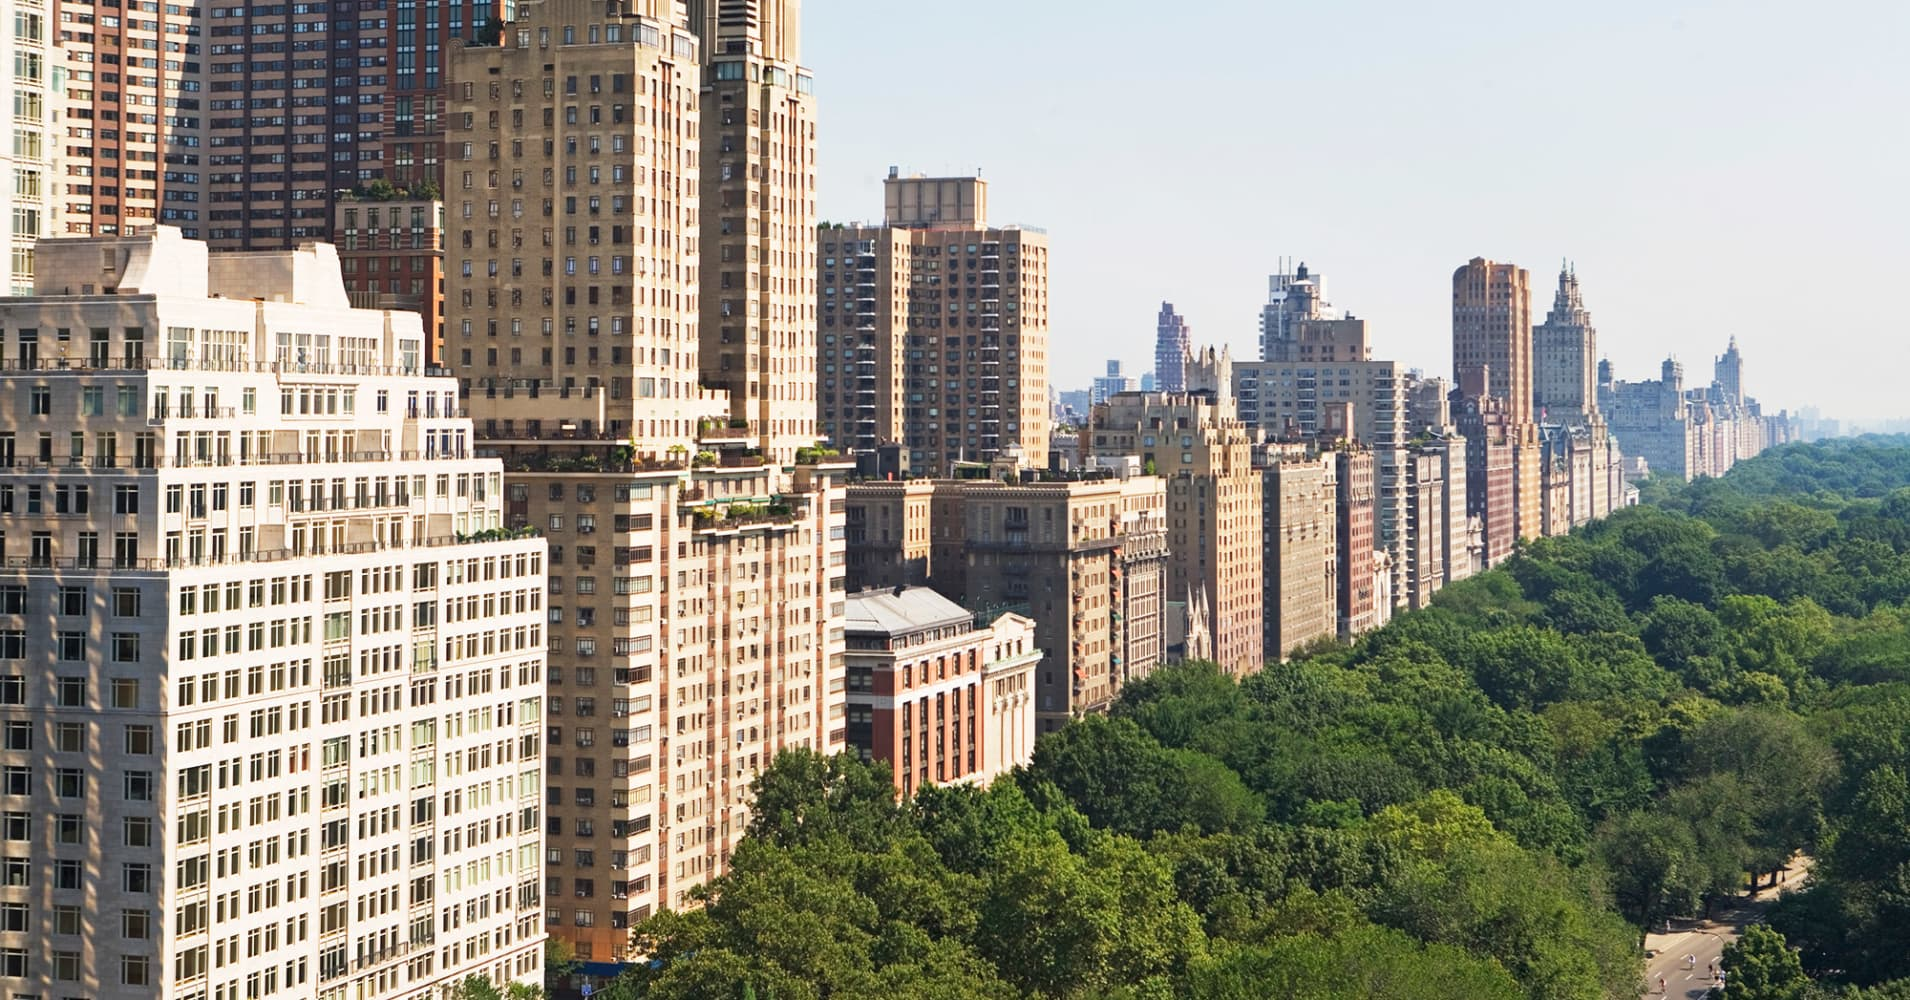 New York real estate has its worst quarter in 6 years